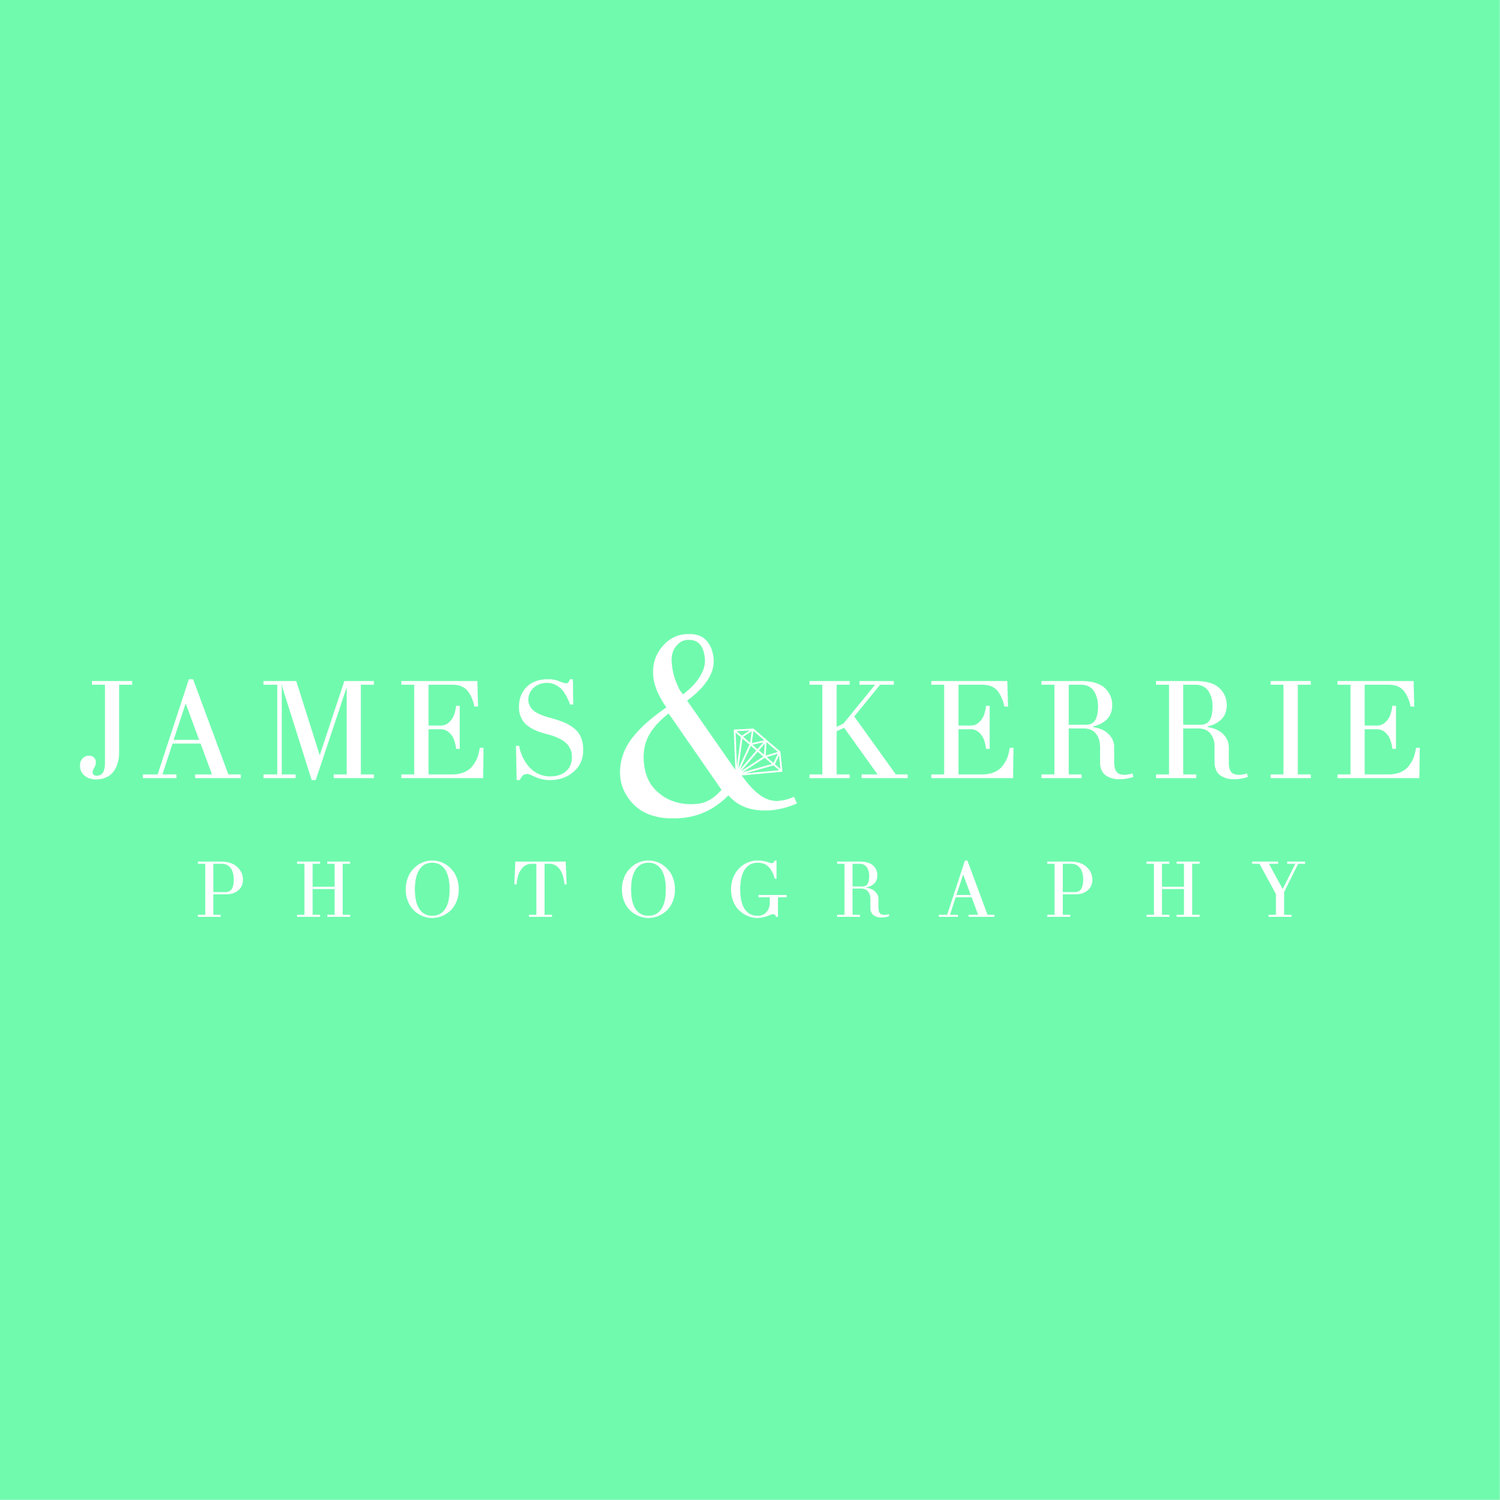 James & Kerrie photography | Kew Gardens wedding photographers | Somerset Wedding photographers